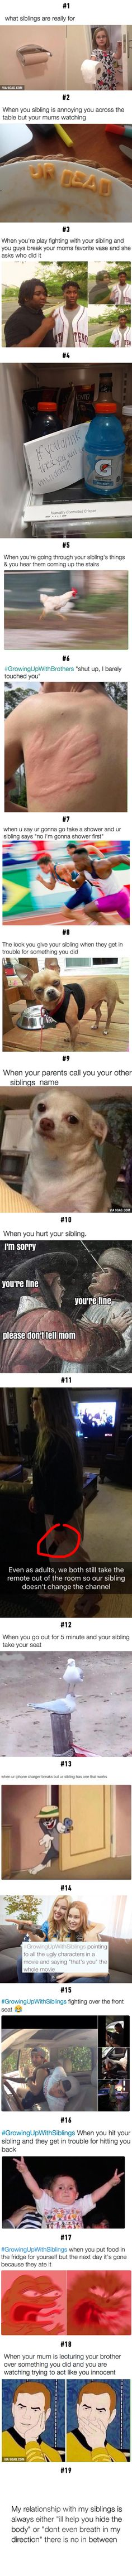 19 Perks Of Having A Sibling is part of Funny - More memes, funny videos and pics on Really Funny Memes, Stupid Funny Memes, Funny Relatable Memes, Funny Posts, The Funny, Funny Stuff, Funny Things, Funny Kids, Funny Quotes